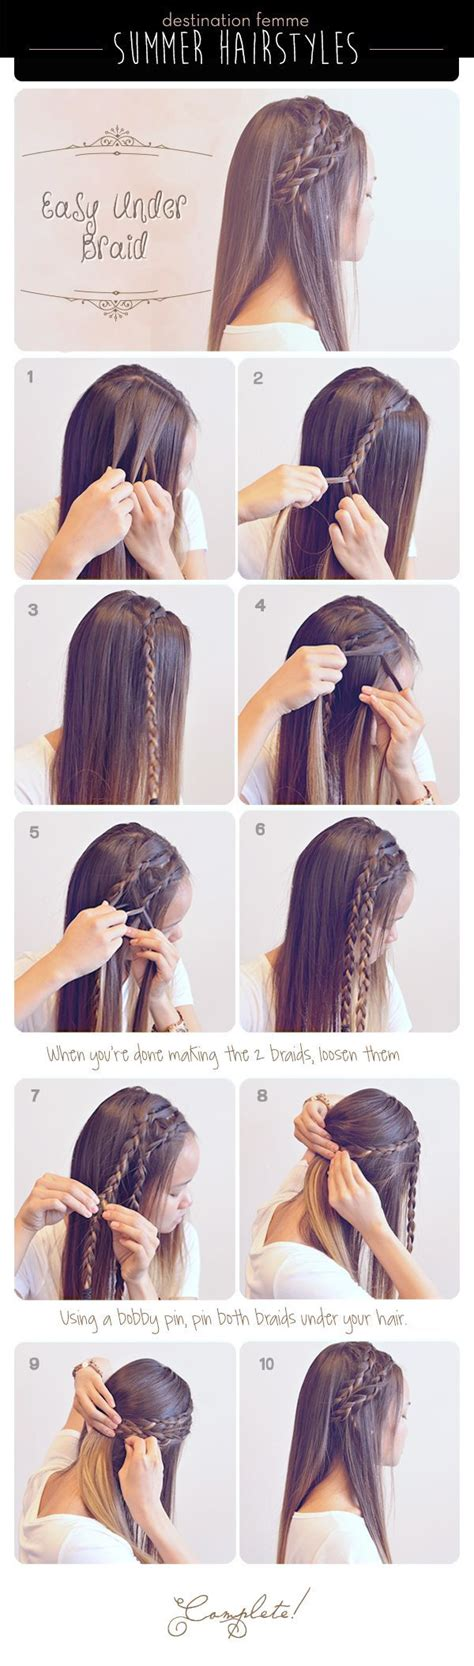 Easy Hairstyles For Long Hair No Braids | summer braid hairstyle for summer pictures photos and